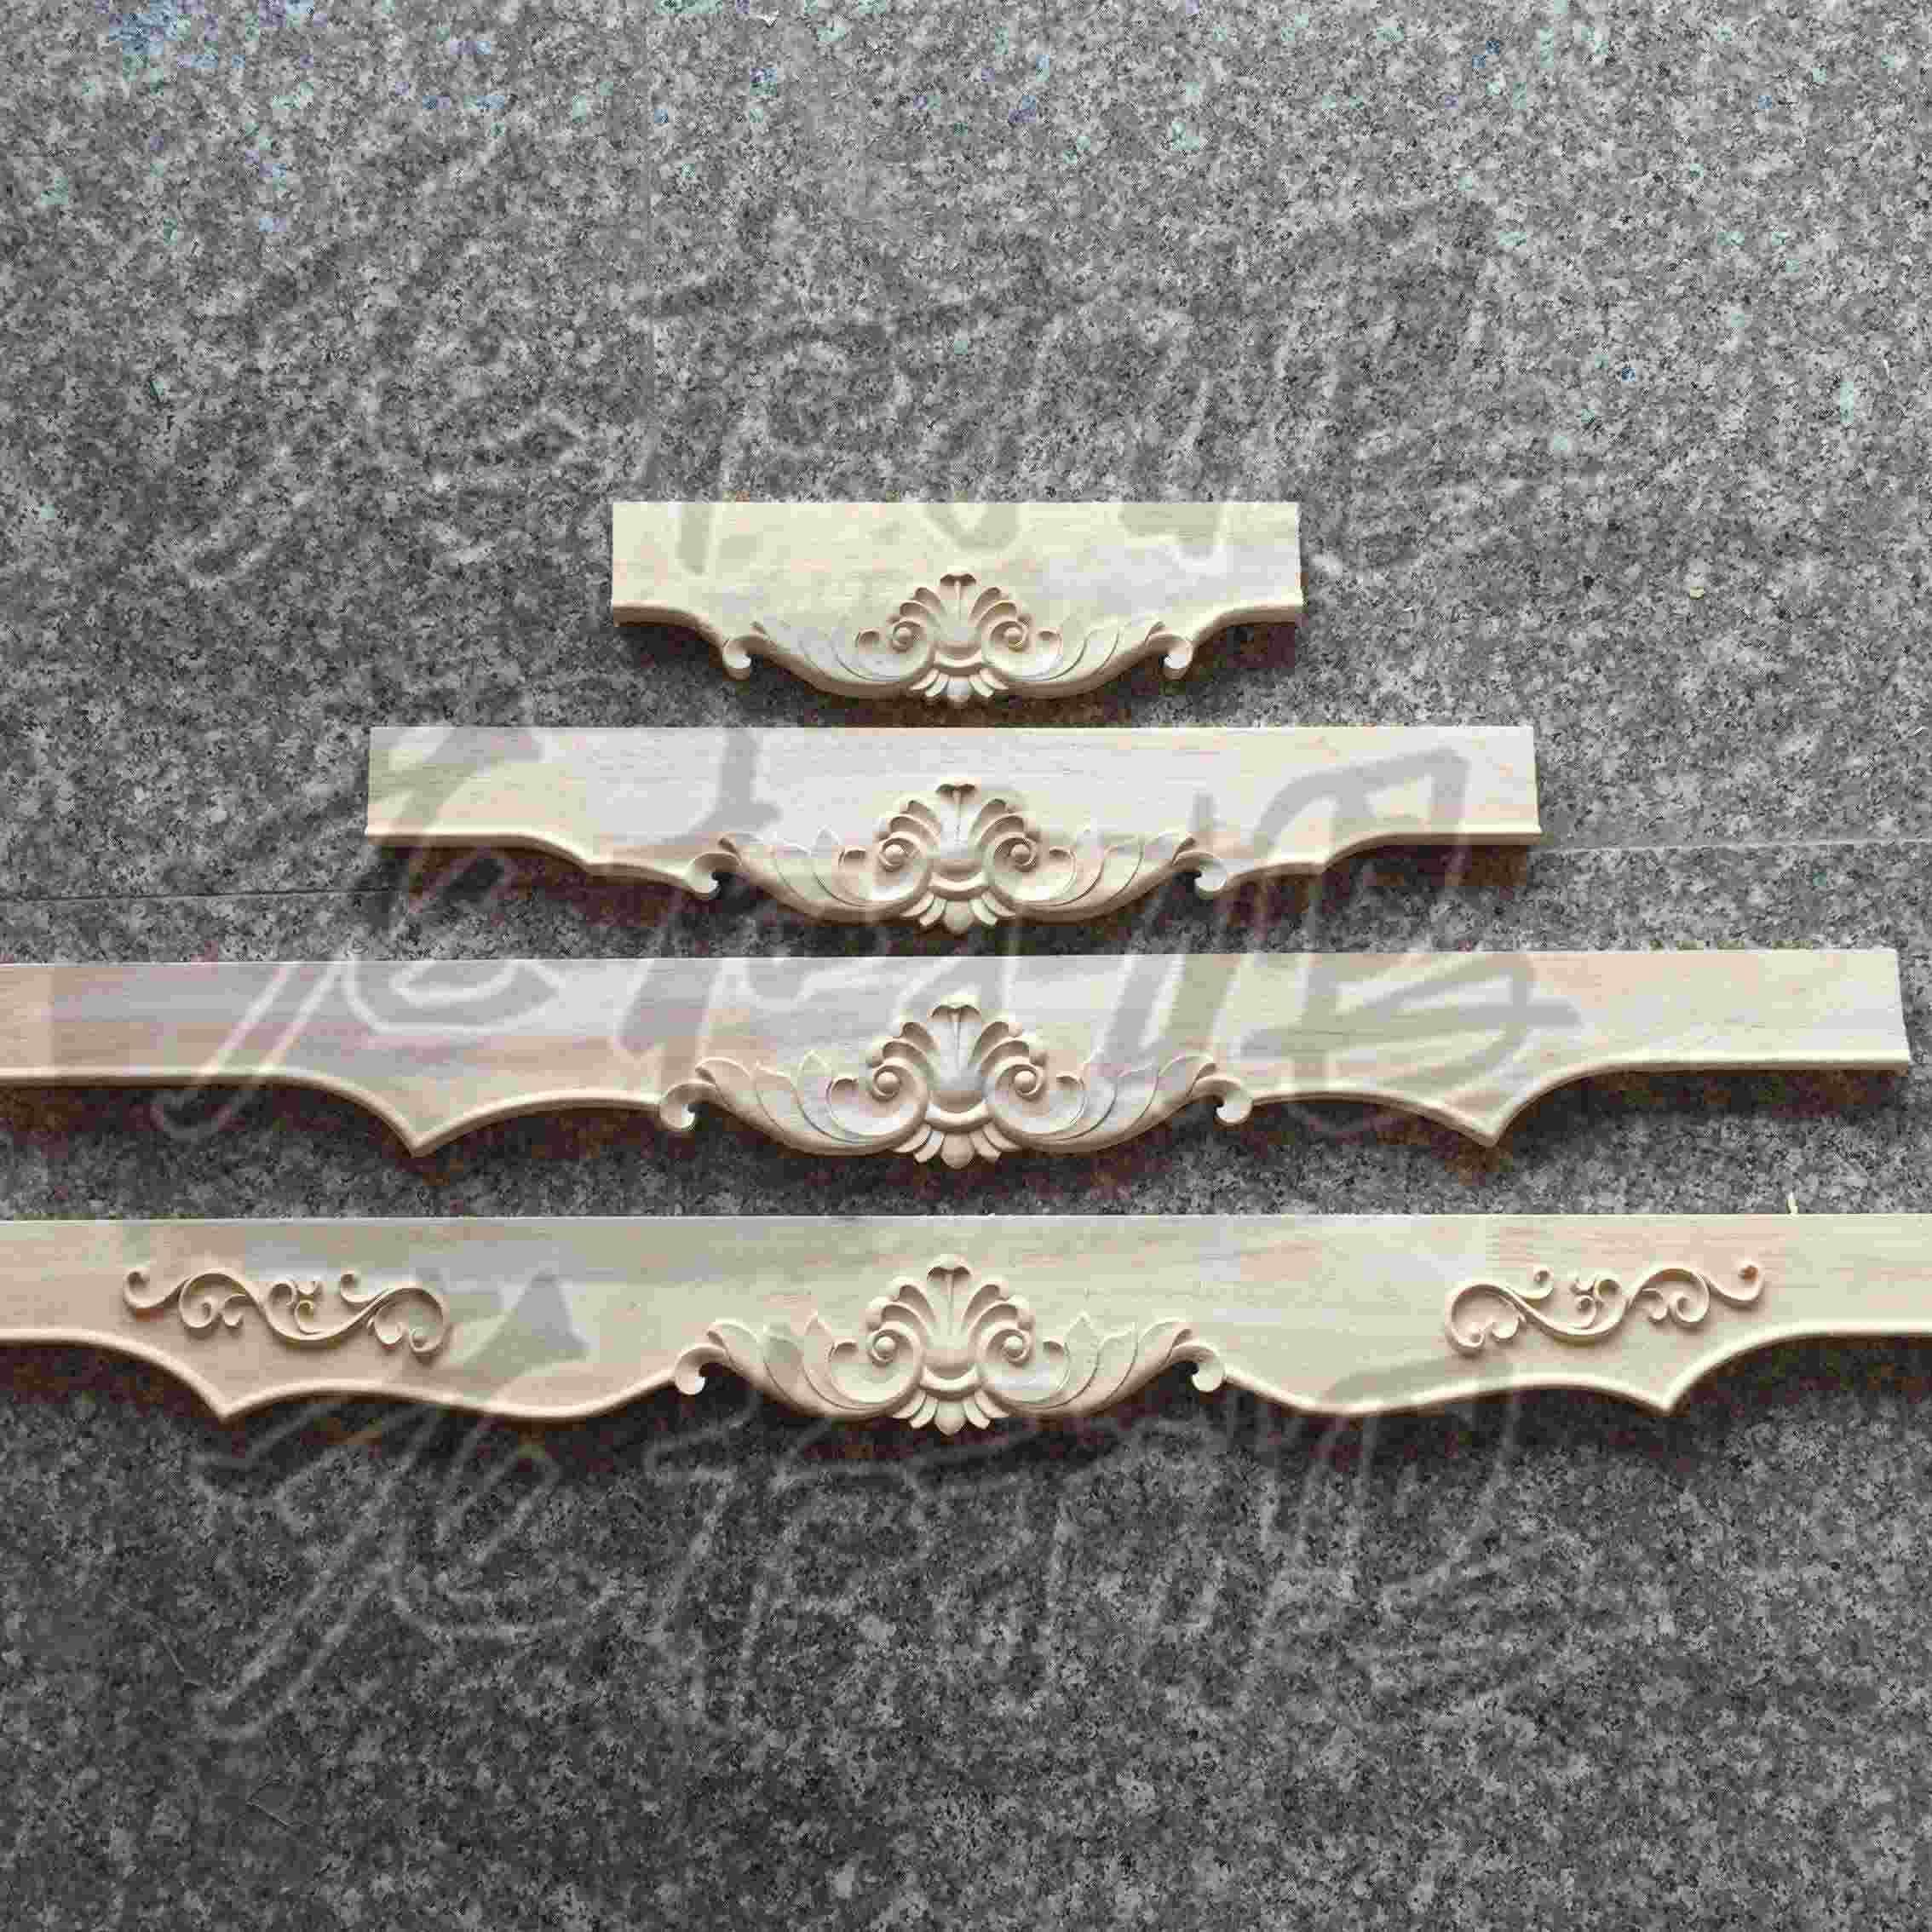 Online cheap dongyang wood carving style